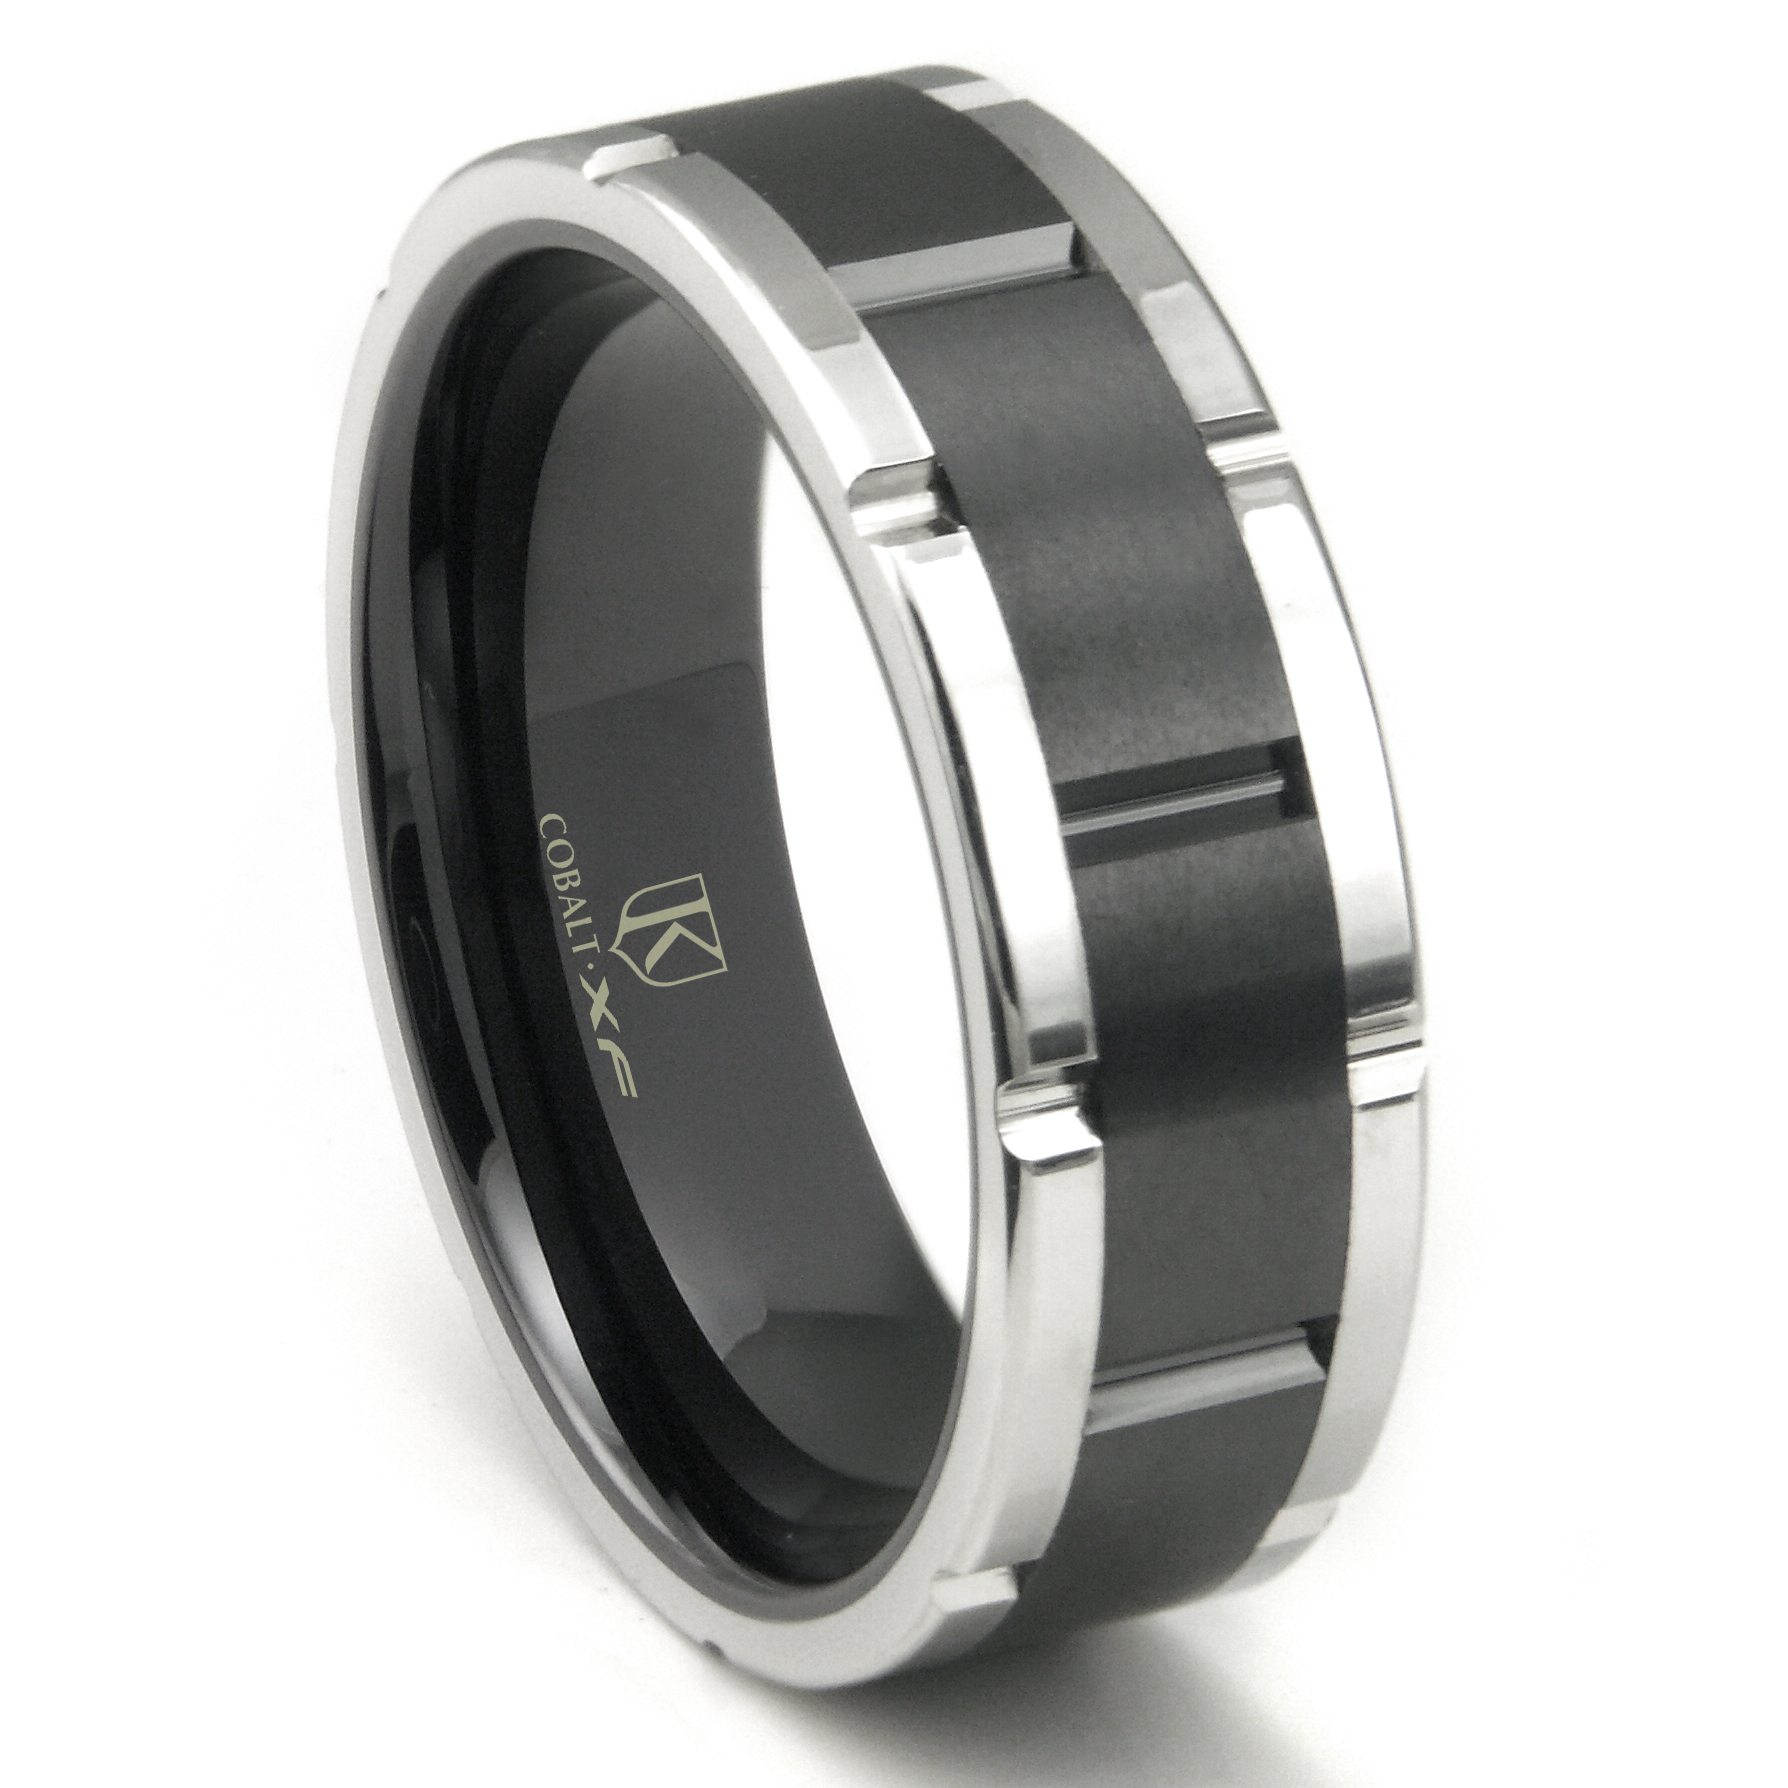 Mens Cobalt Chrome Wedding Band | Domed Polished Band